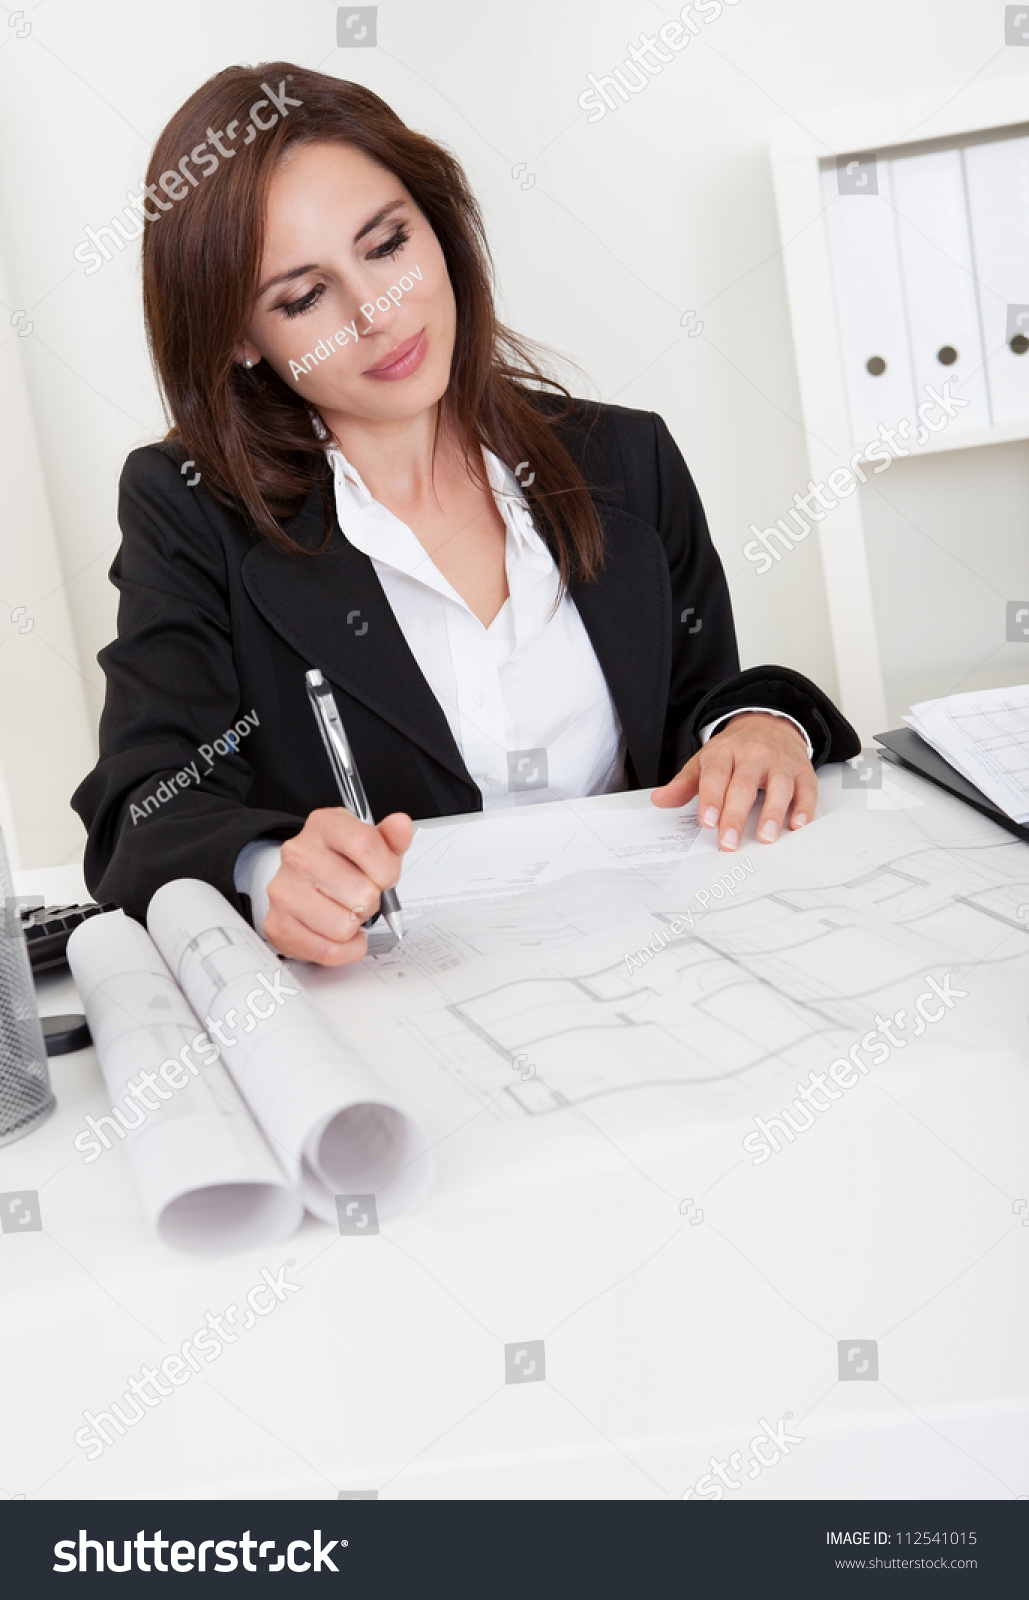 blueprints at office desk preview save to a lightbox blueprints office desk preview save